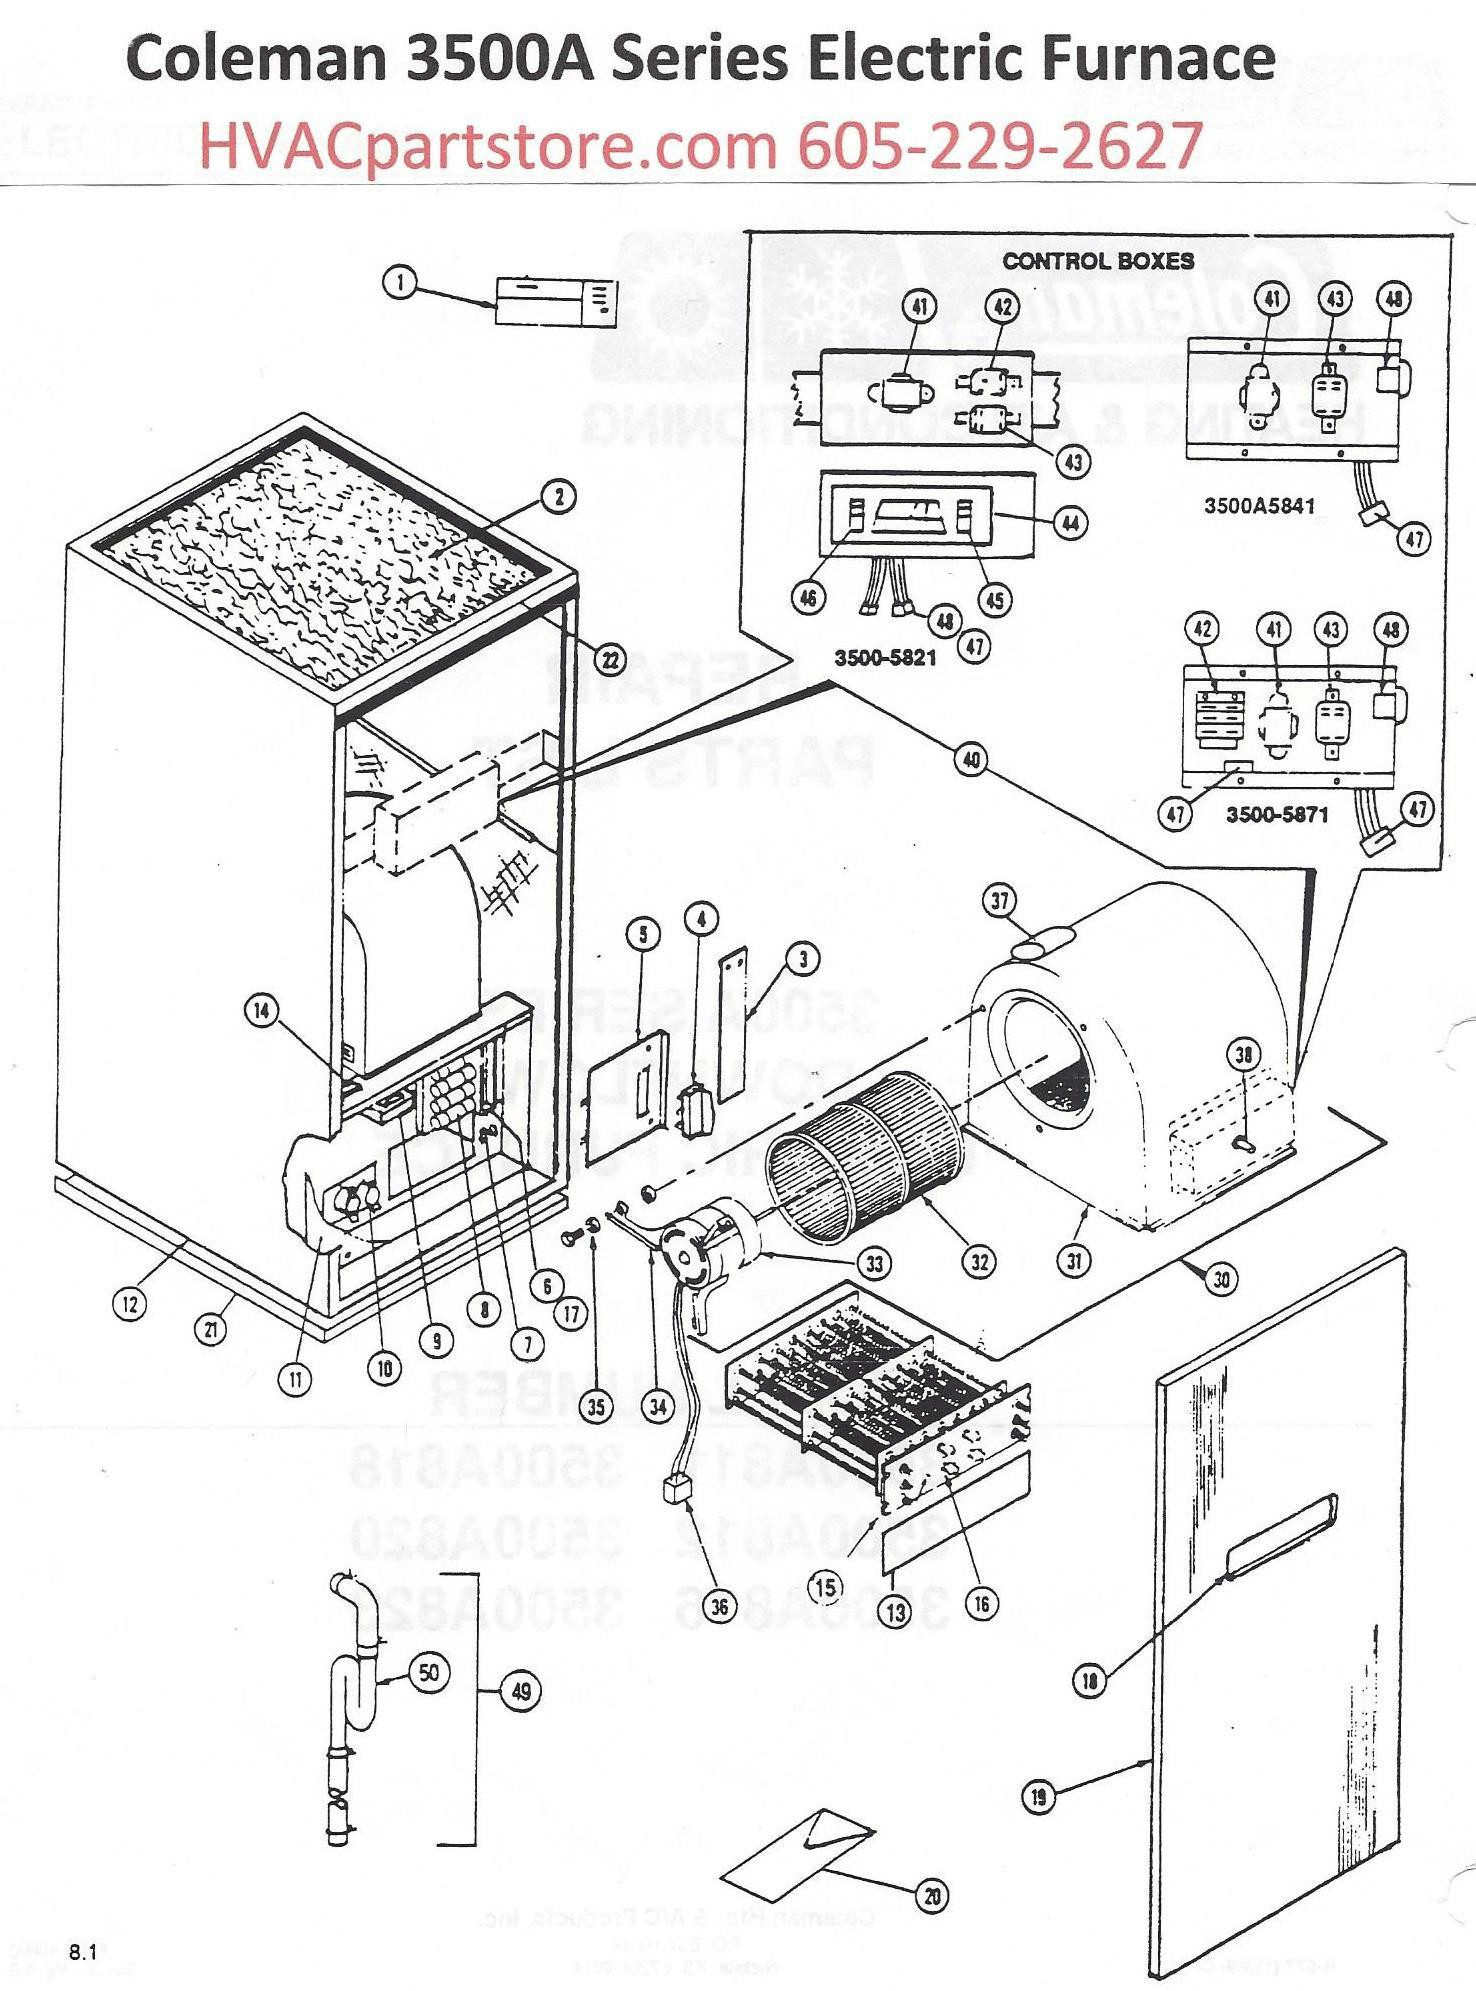 Electric Heat Sequencer Wiring Diagram And 8 7 - Electric Furnace Wiring Diagram Sequencer